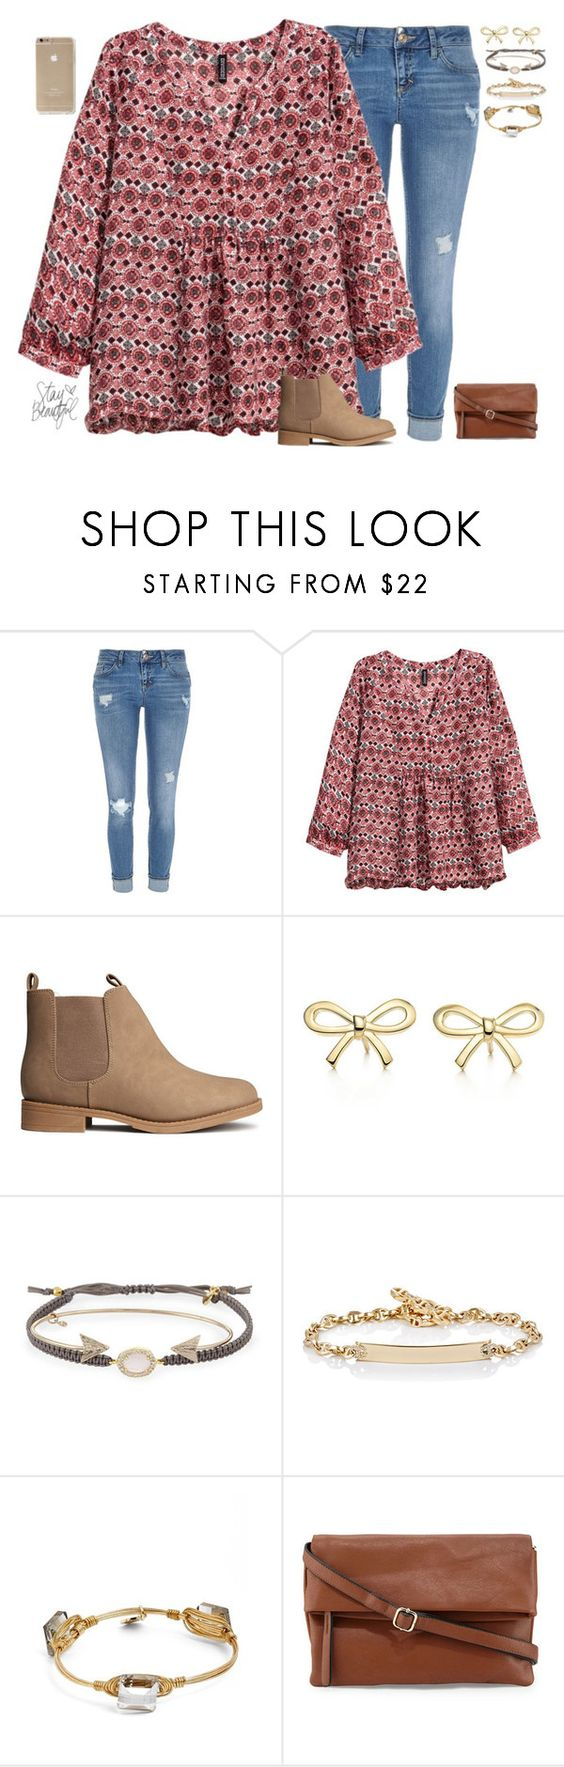 """""""•Be with someone who understands how rare your love is•"""" by mgpayne10 ❤ liked on Polyvore featuring River Island, H&M, Tiffany & Co., Tai, Hoorsenbuhs, Bourbon and Boweties and Neiman Marcus"""